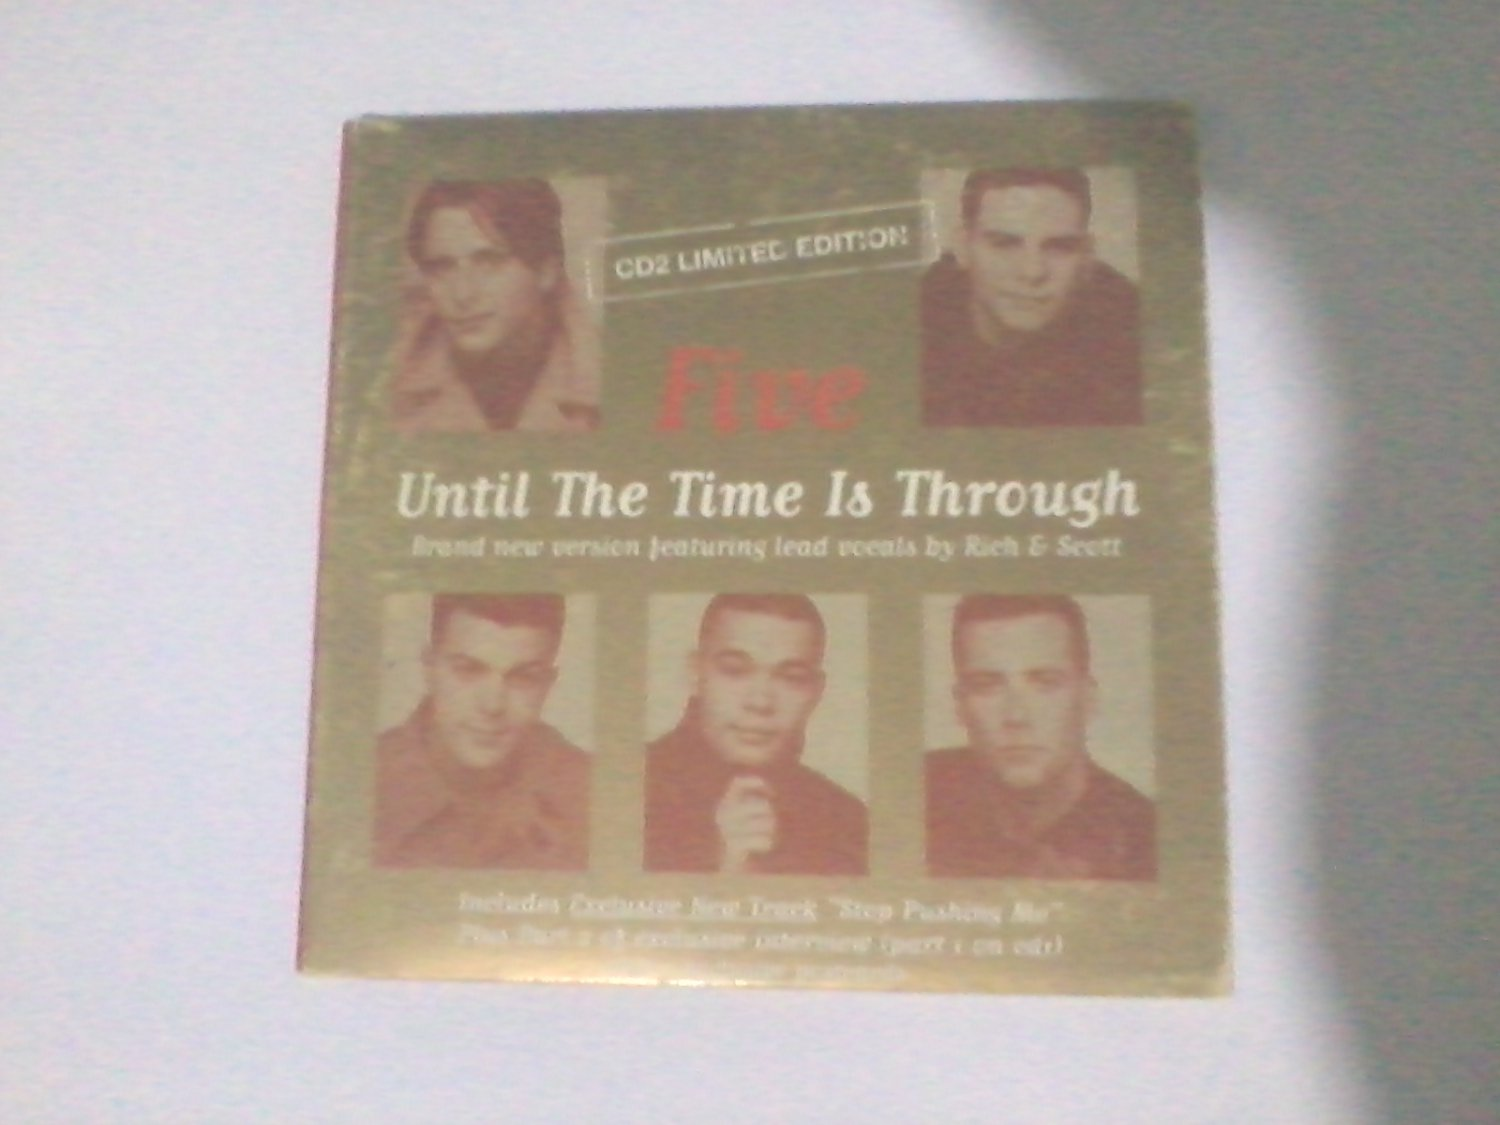 Five - Until The Time Is Through CD2 Limited Edition